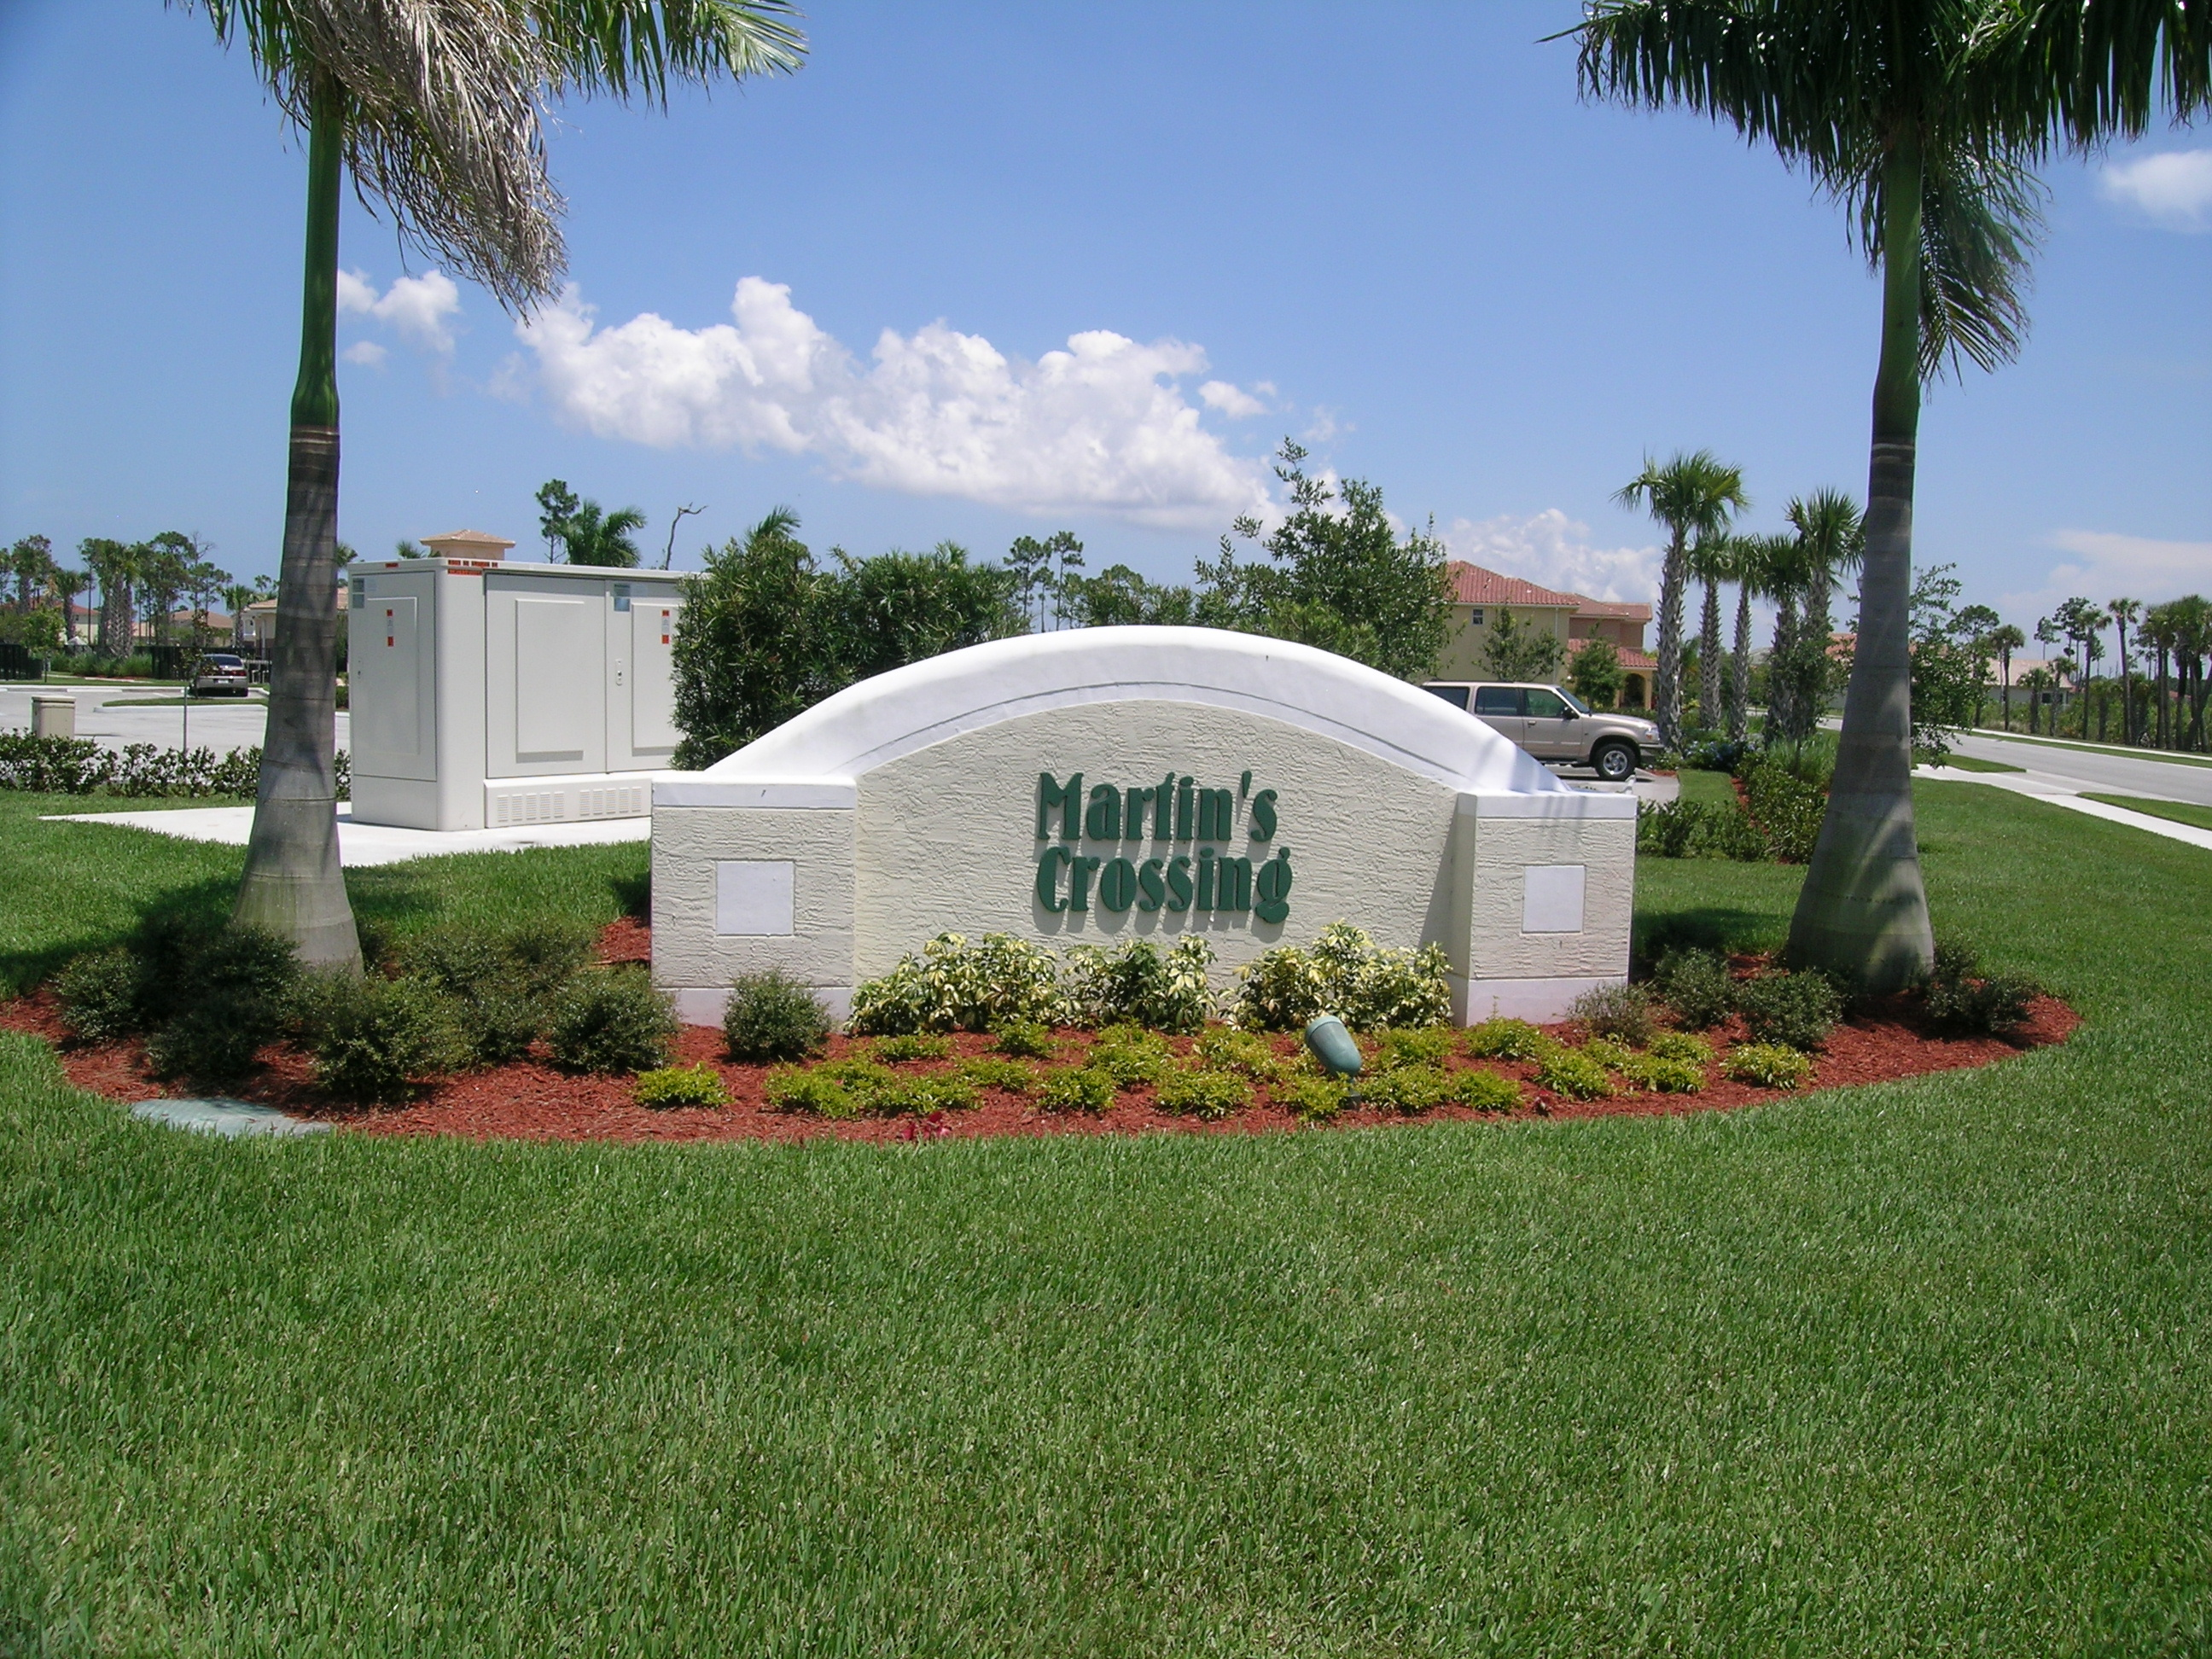 Martins Crossing in Stuart Florida